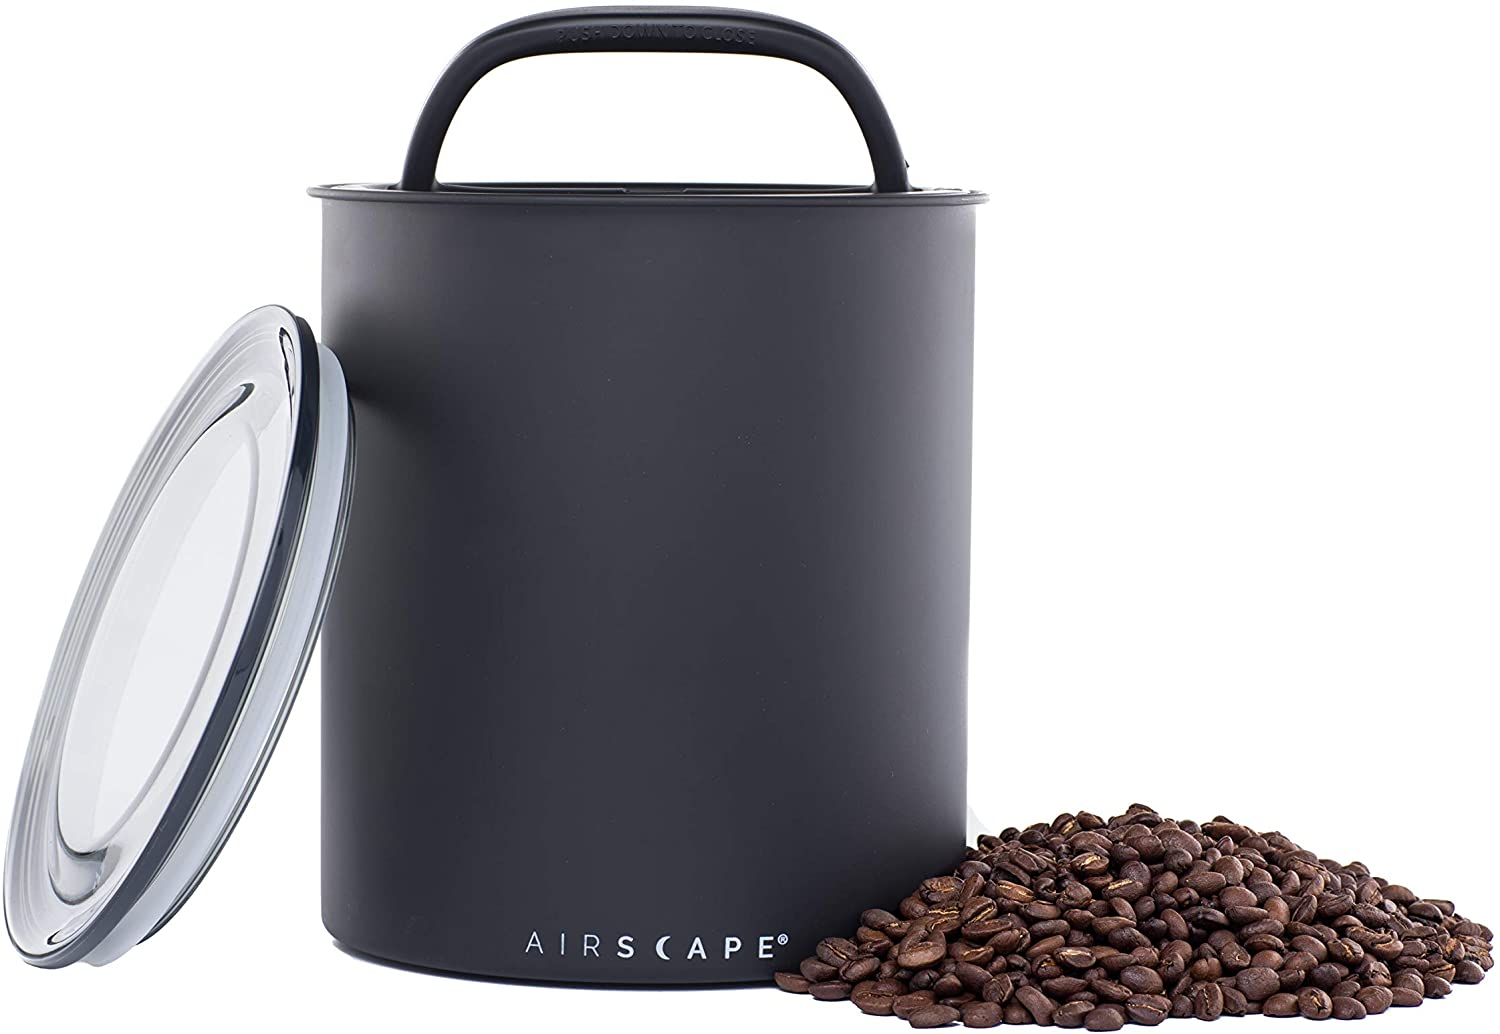 Airscape Coffee Storage Canister (2.5 lb Dry Beans) - Big Kilo Size Canister with Patented CO2 Releasing Airtight Lid Pushes Air Out to Preserve Food Freshness - Matte Finish Food Container - Charcoal